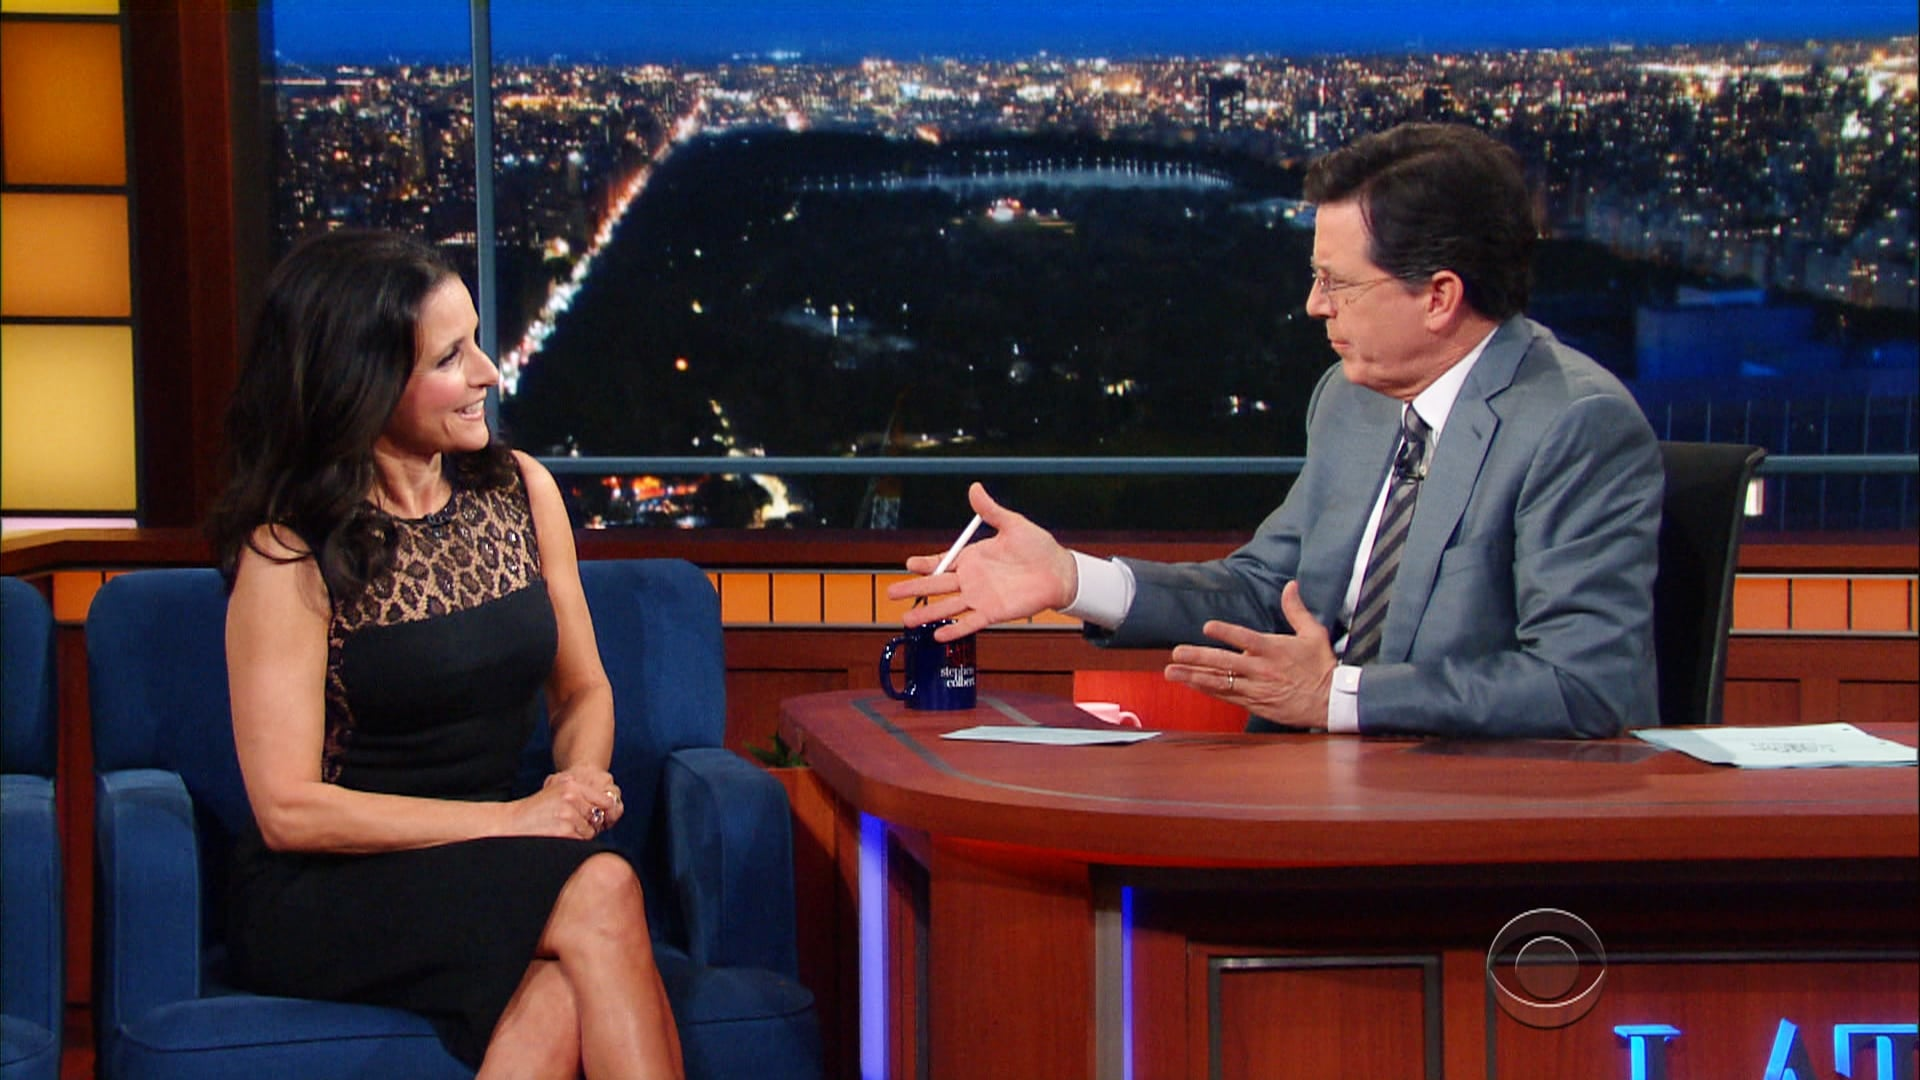 The Late Show with Stephen Colbert Season 1 :Episode 127  Julia Louis-Dreyfus, Nikolaj Coster-Waldau, Sam Morril